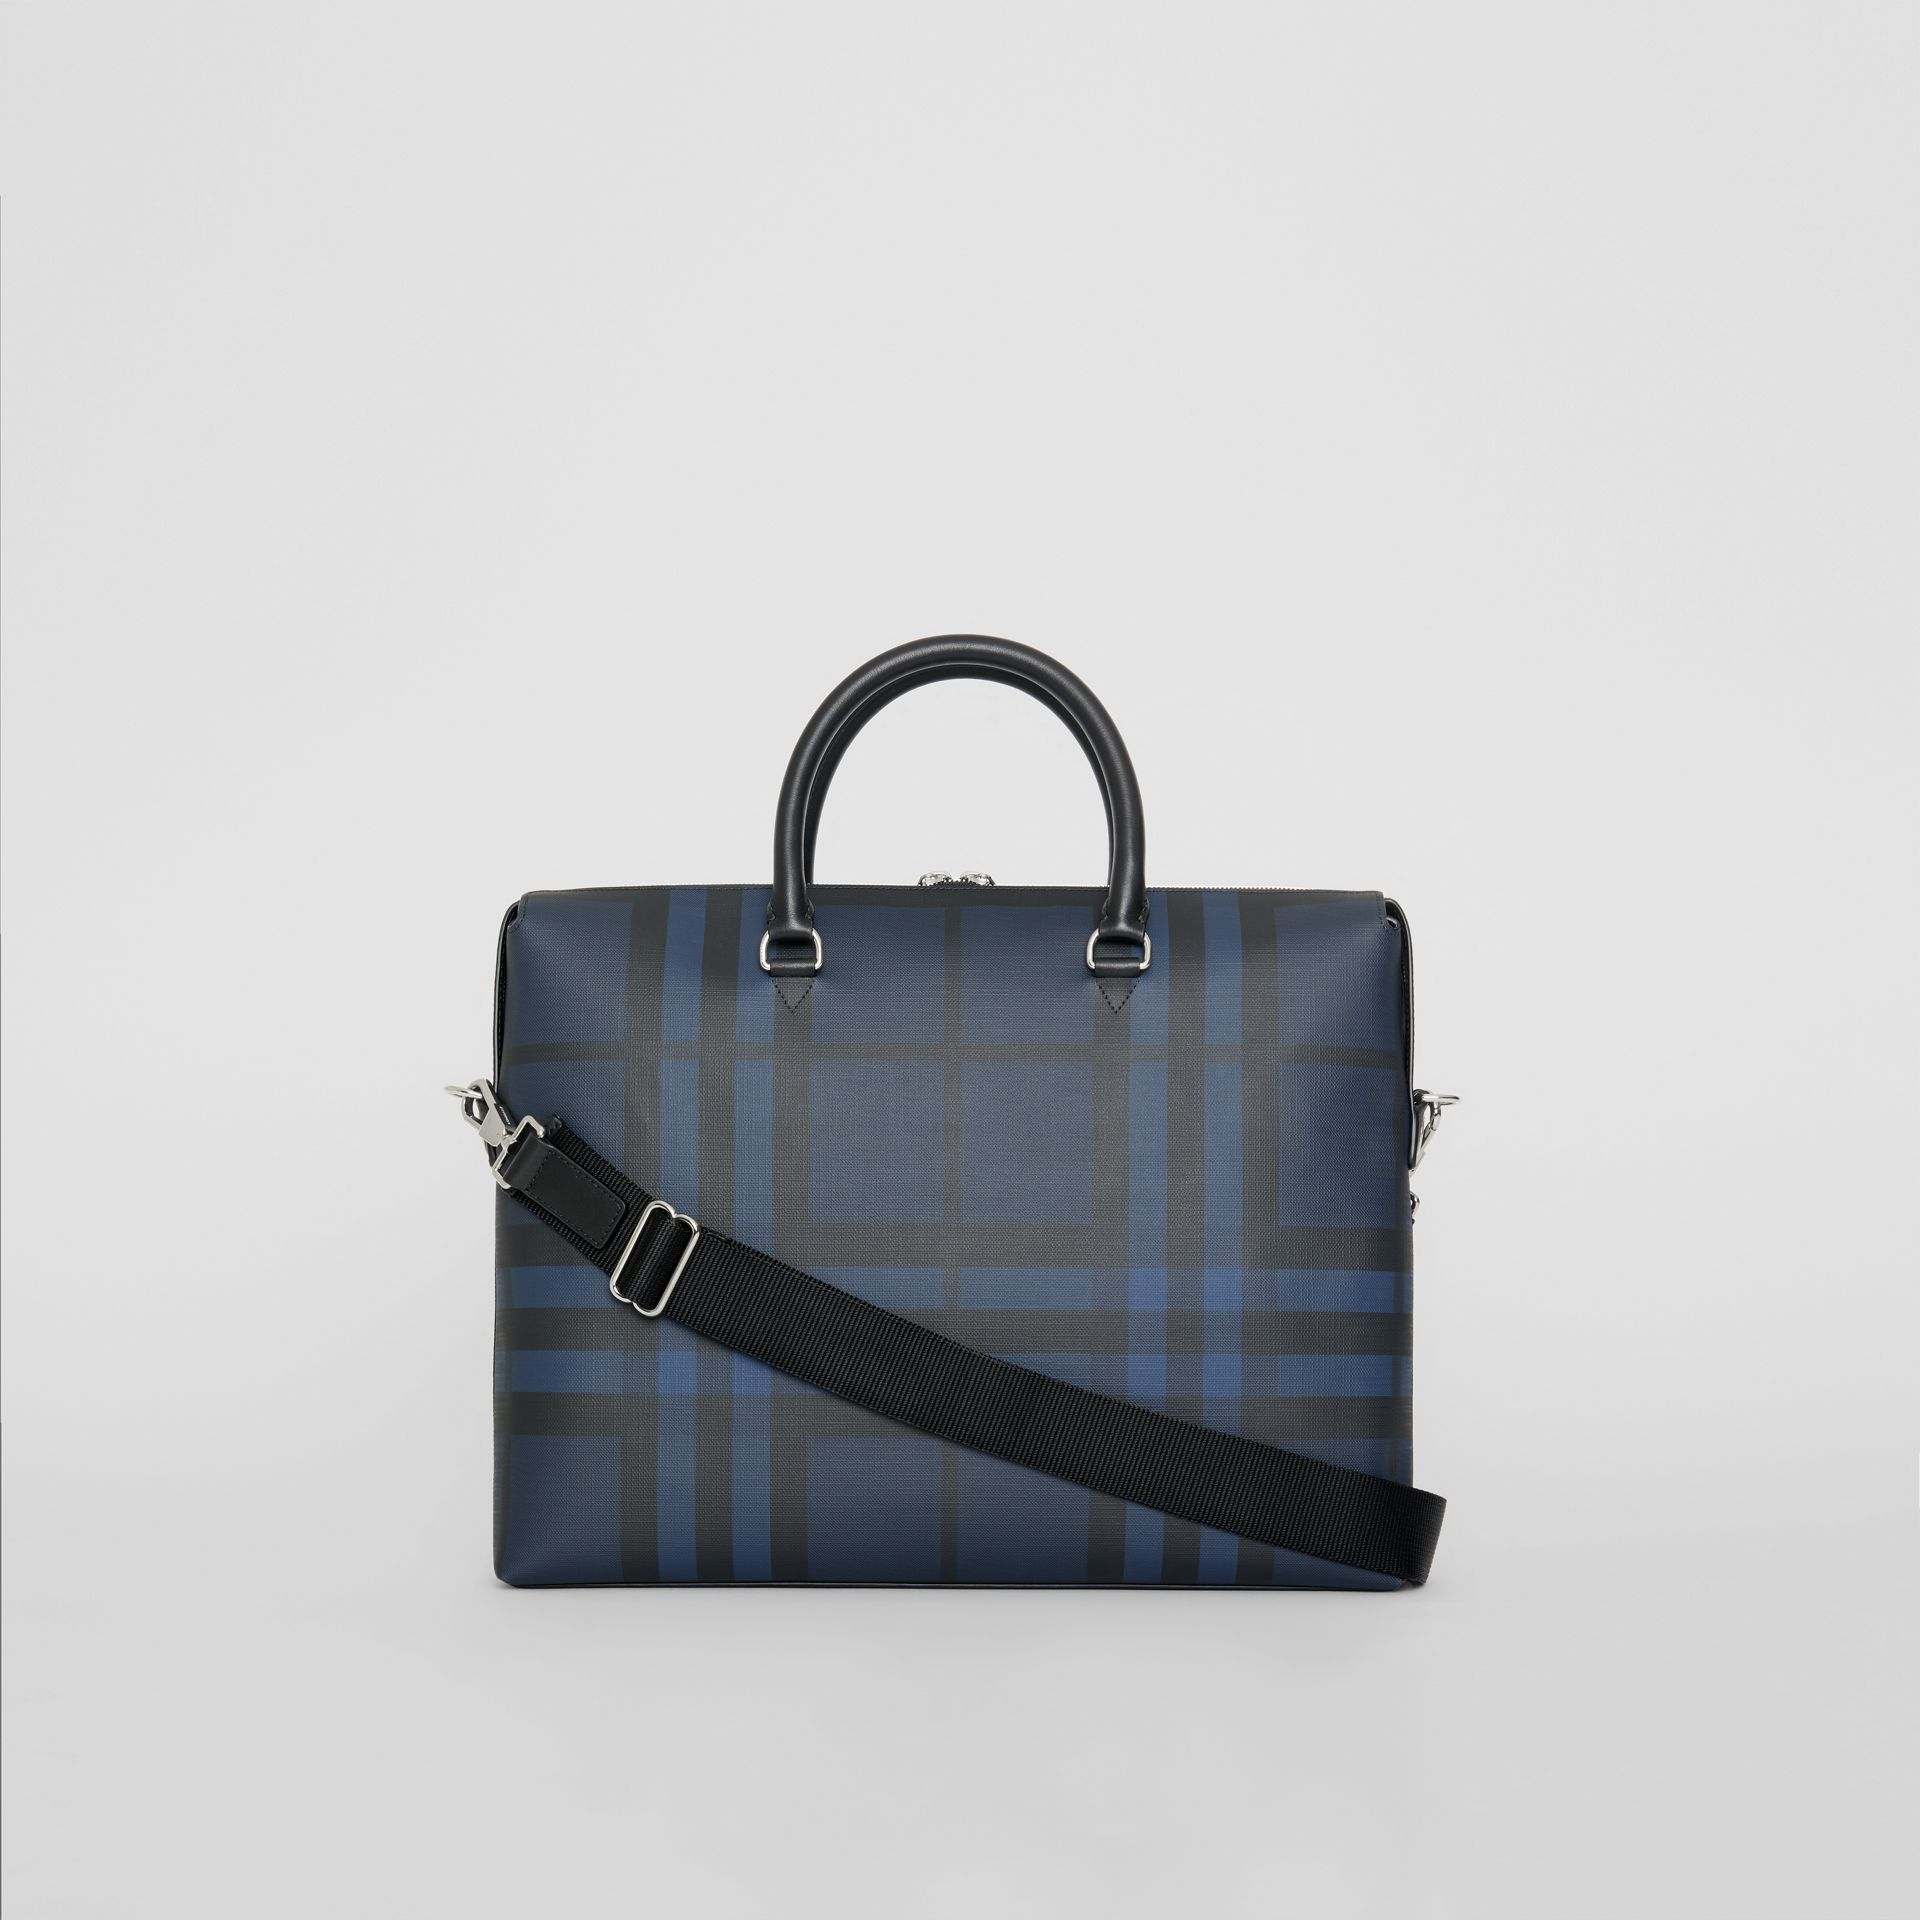 Attaché-case en cuir à motif London check (Marine/noir) - Homme | Burberry Canada - photo de la galerie 5